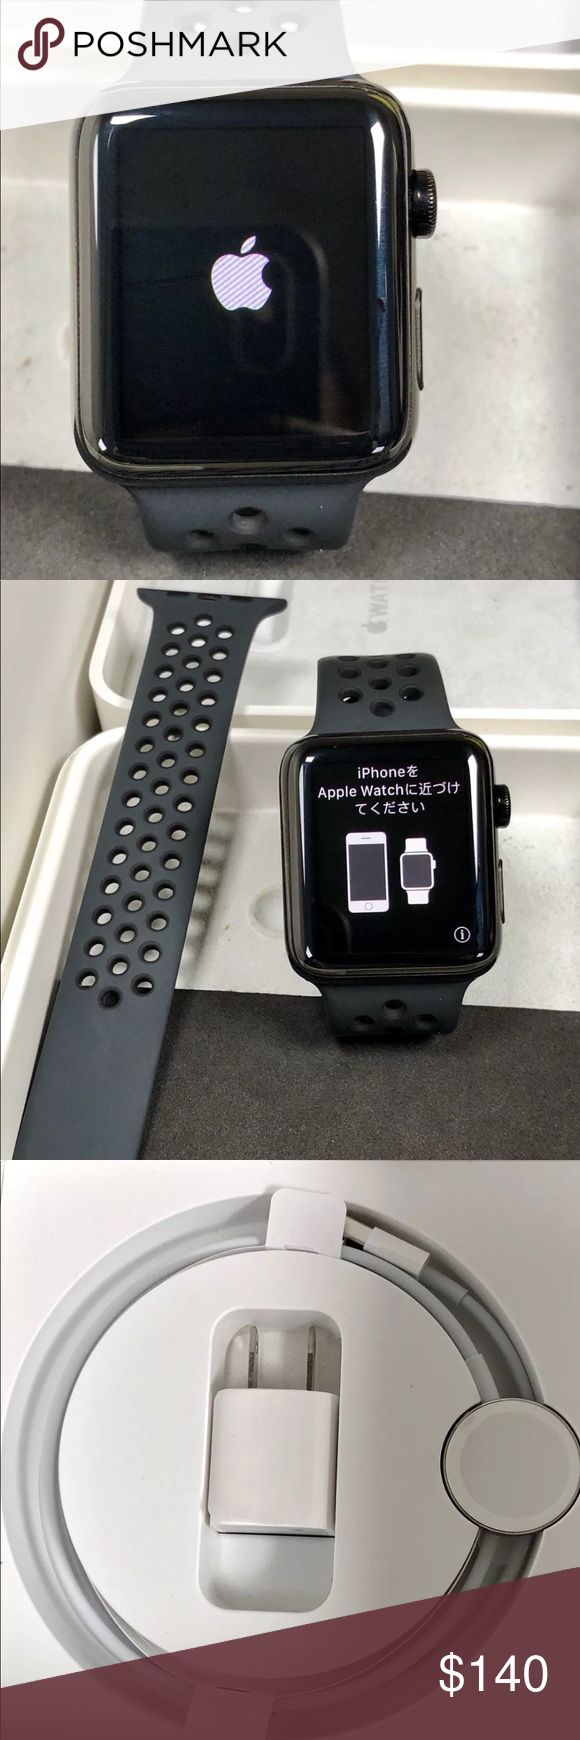 Apple Watch Series 2 42mm Black Nike Sport Band If you would like to purchase this product please contact our representative via telephone (201)-496-0366, also if you have questions about shoe sizes available or questions in general. Prices are negotiable so please be reasonable, also we use a third party application for payments. Apple Accessories Watches